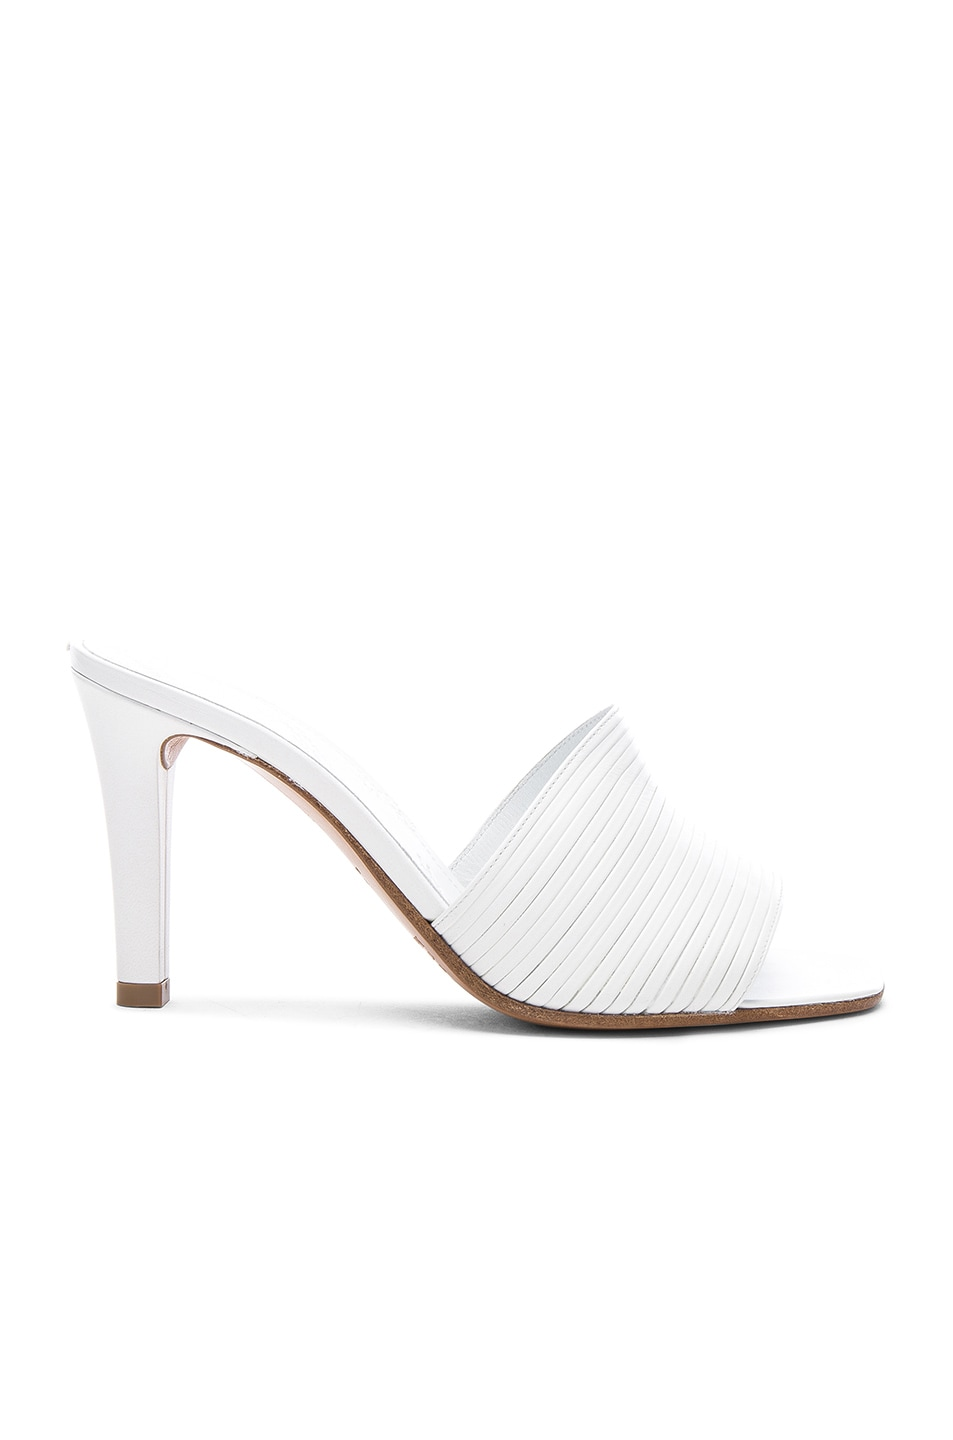 Image 1 of Maison Margiela Leather Heels in White